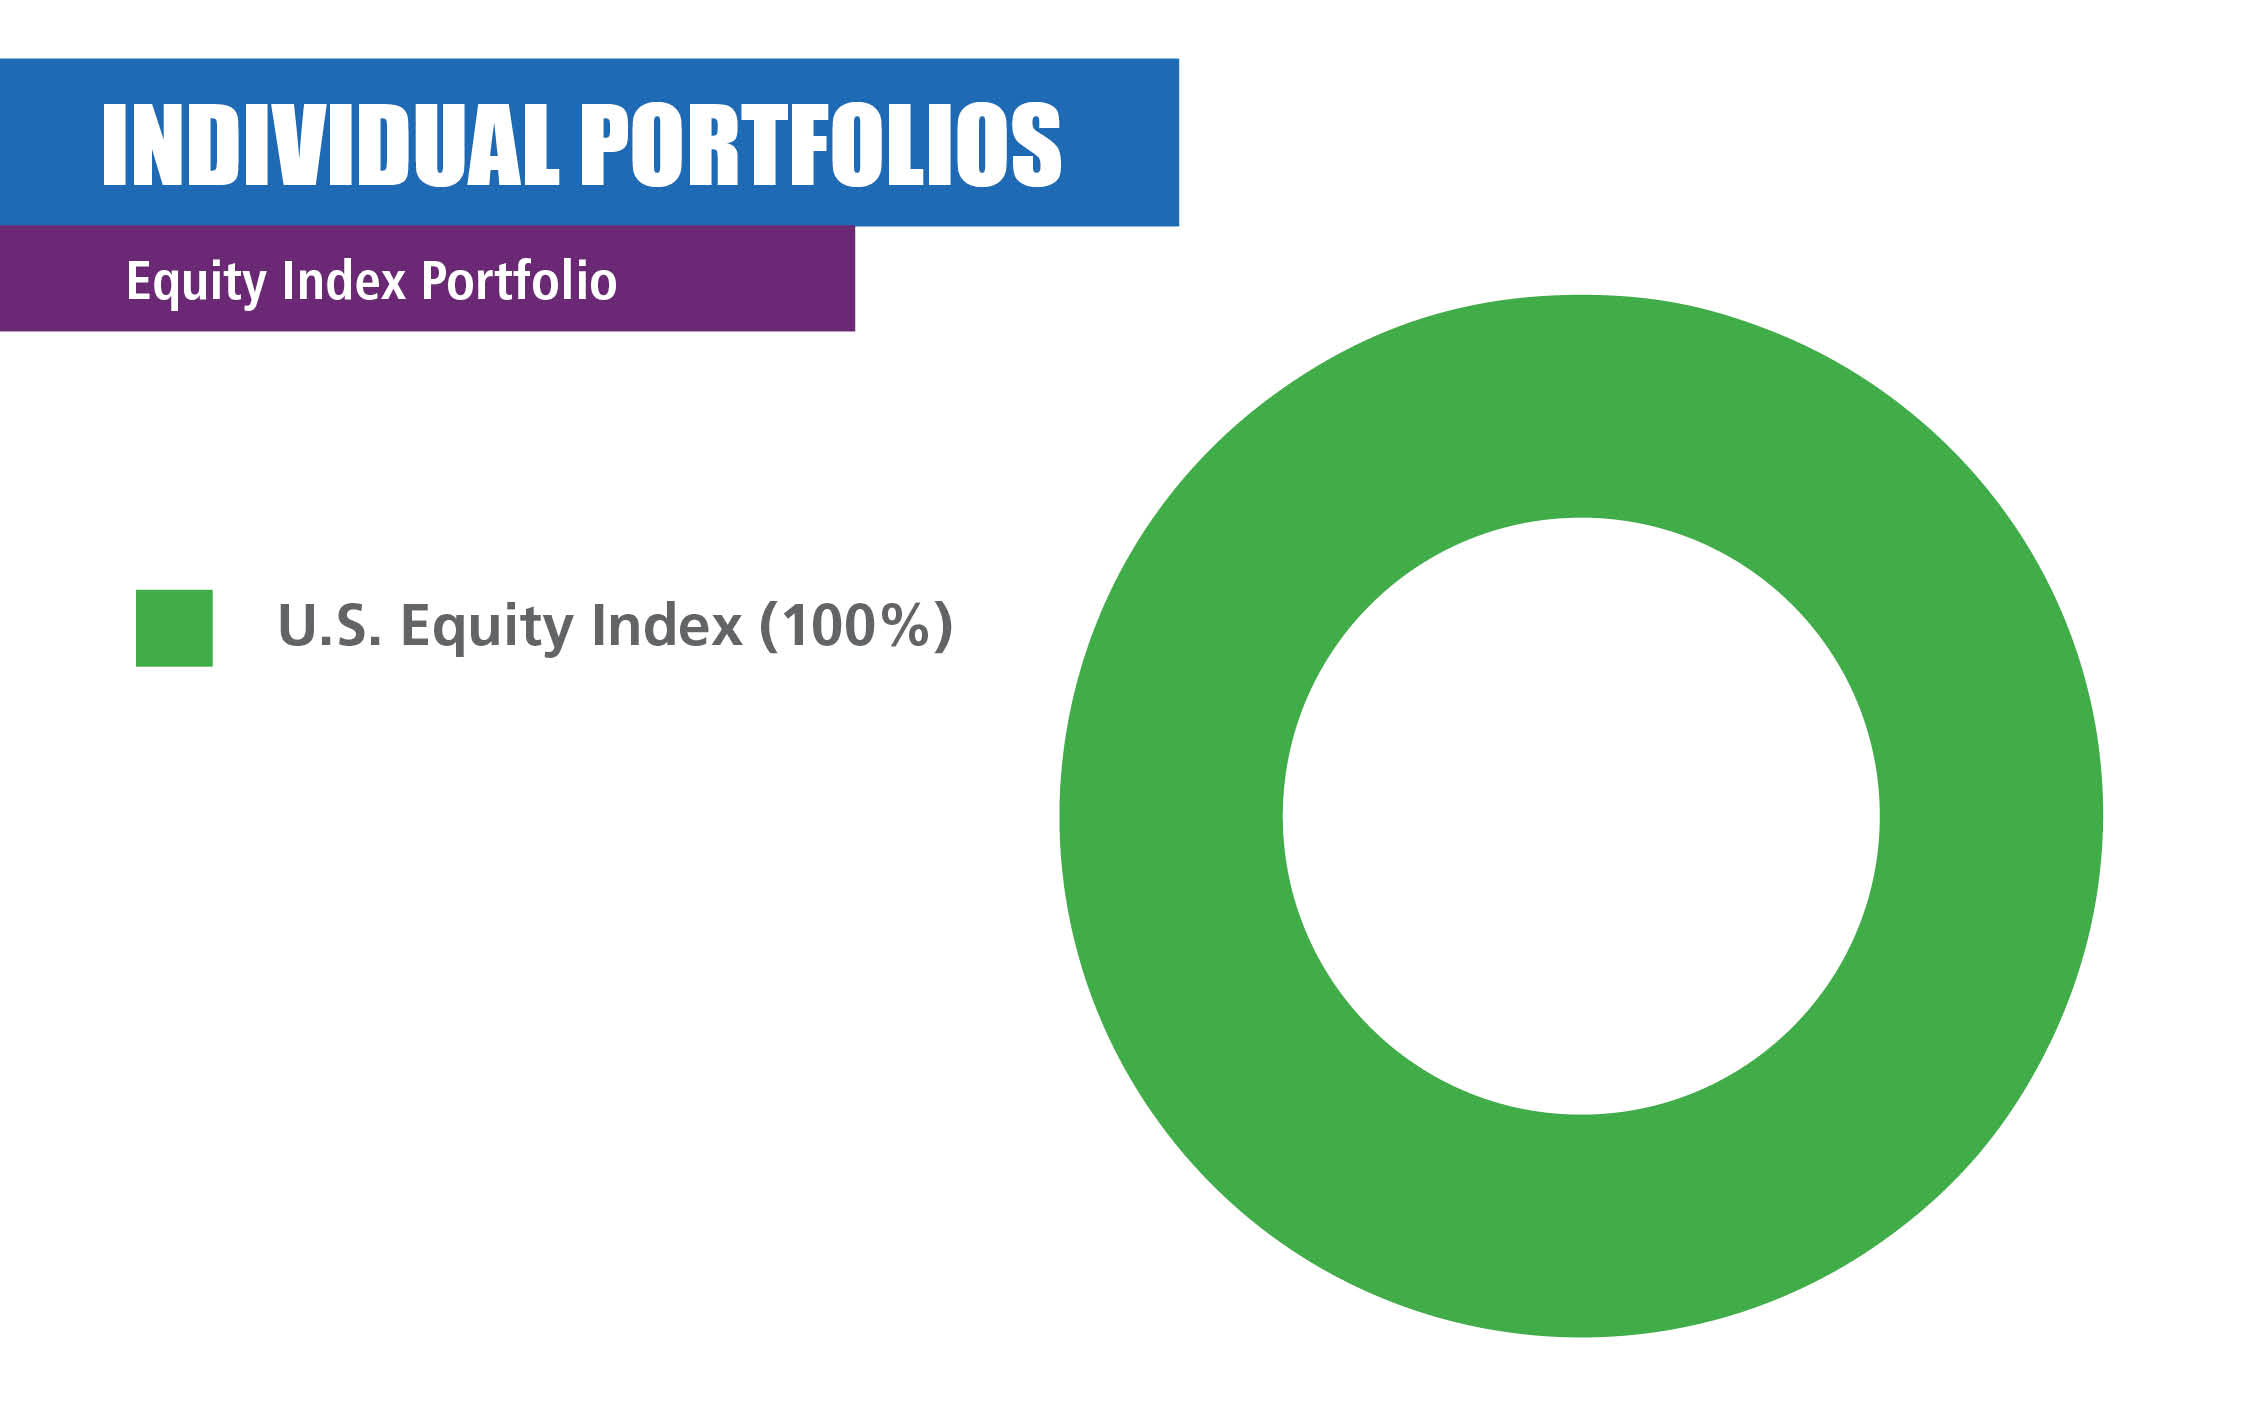 U.S. Equity Index pie chart